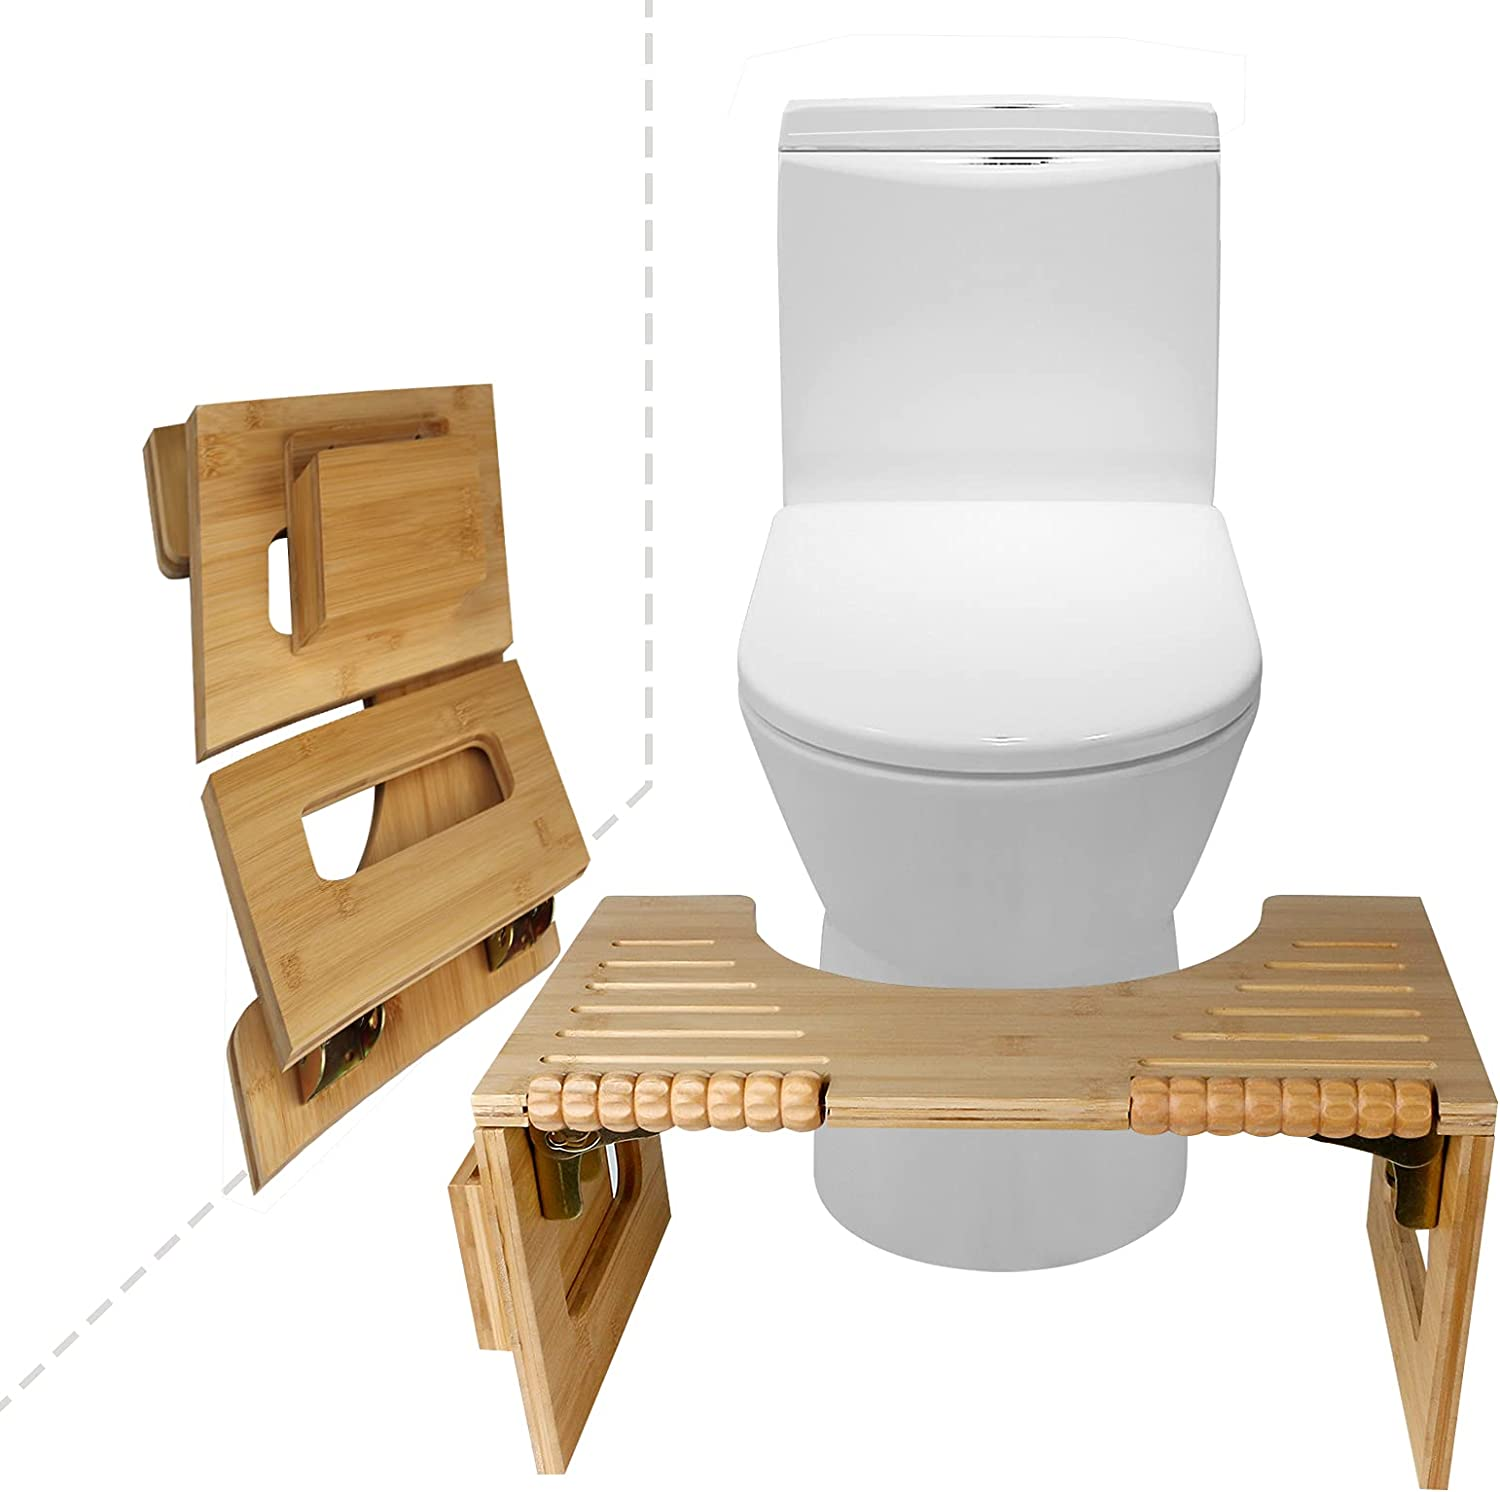 Bamboo Squatting Toilet Stool overseas 8 Portable Inches Folding Rapid rise Height